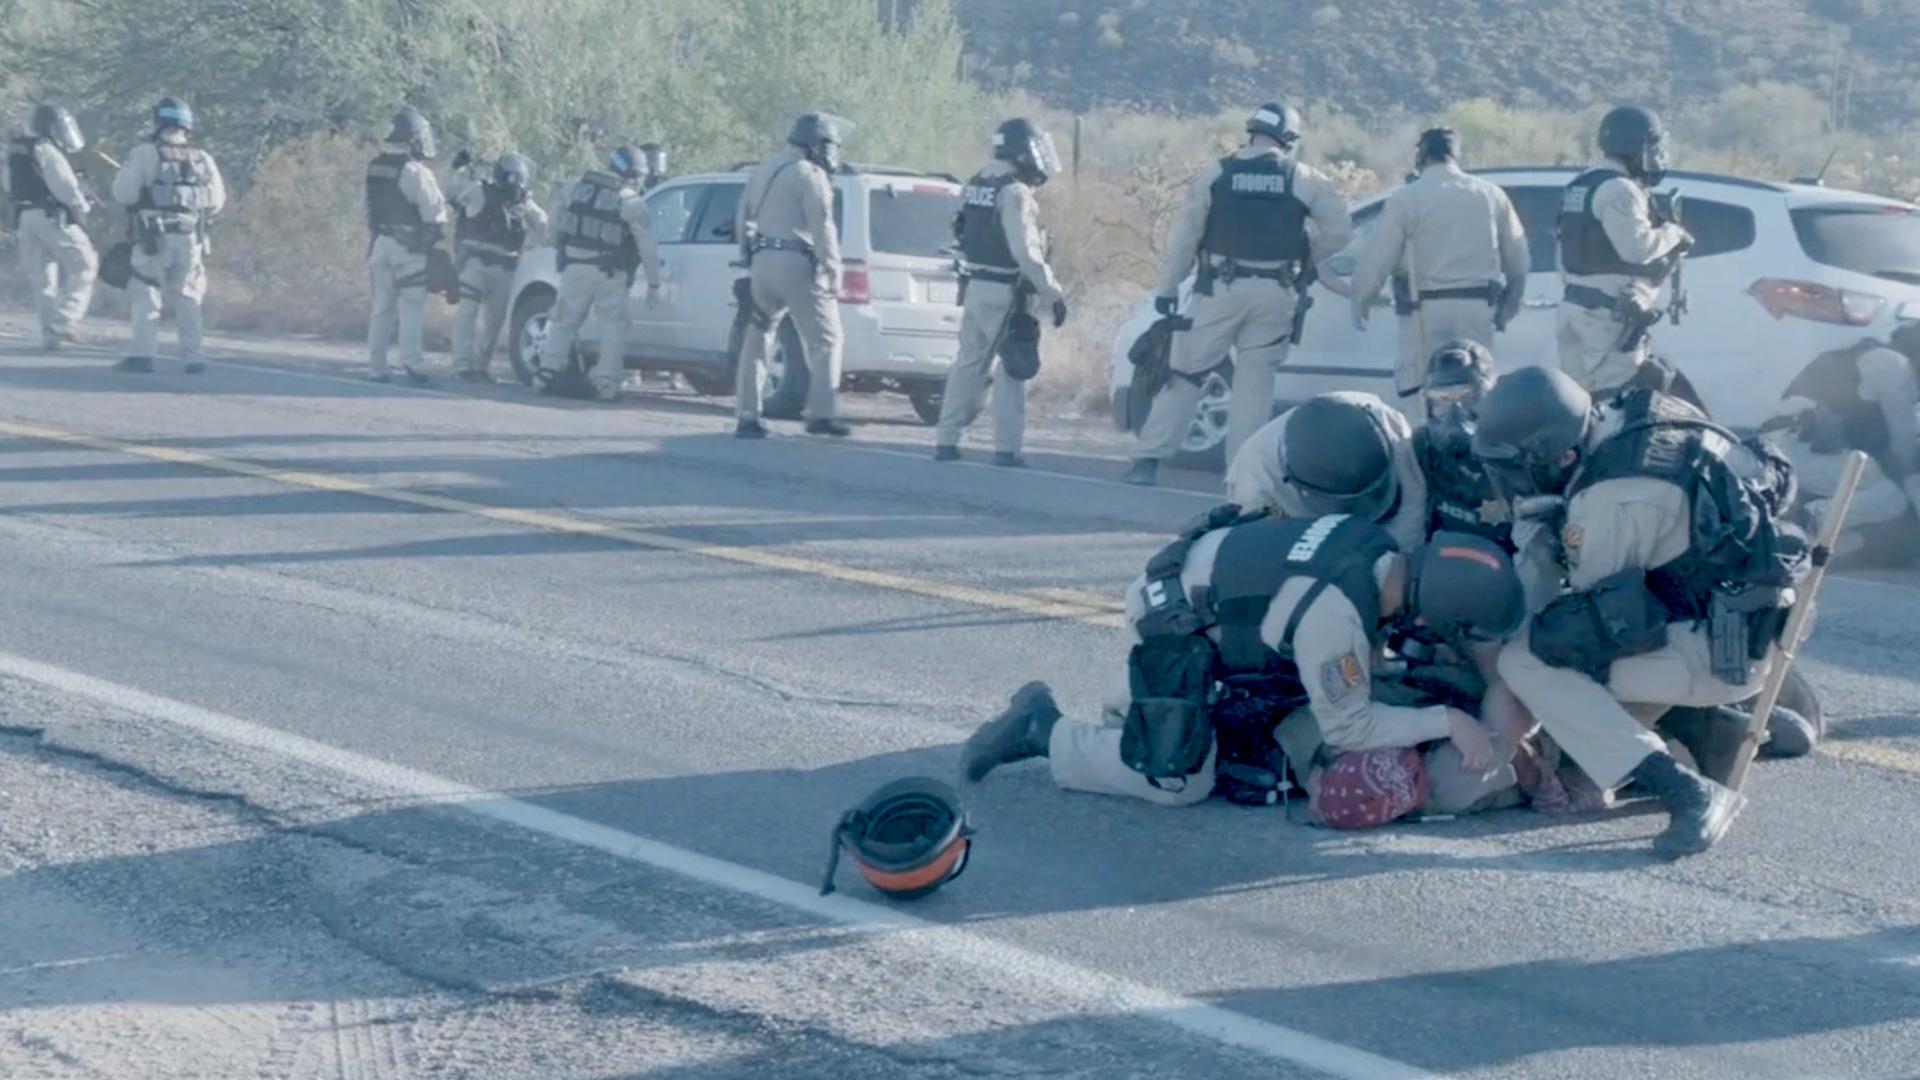 Arizona Department of Safety officers surround and handcuff an Indigenous demonstrator during an O'odham-led blockade at a Border Patrol checkpoint on Highway 85 on October 12, 2020.